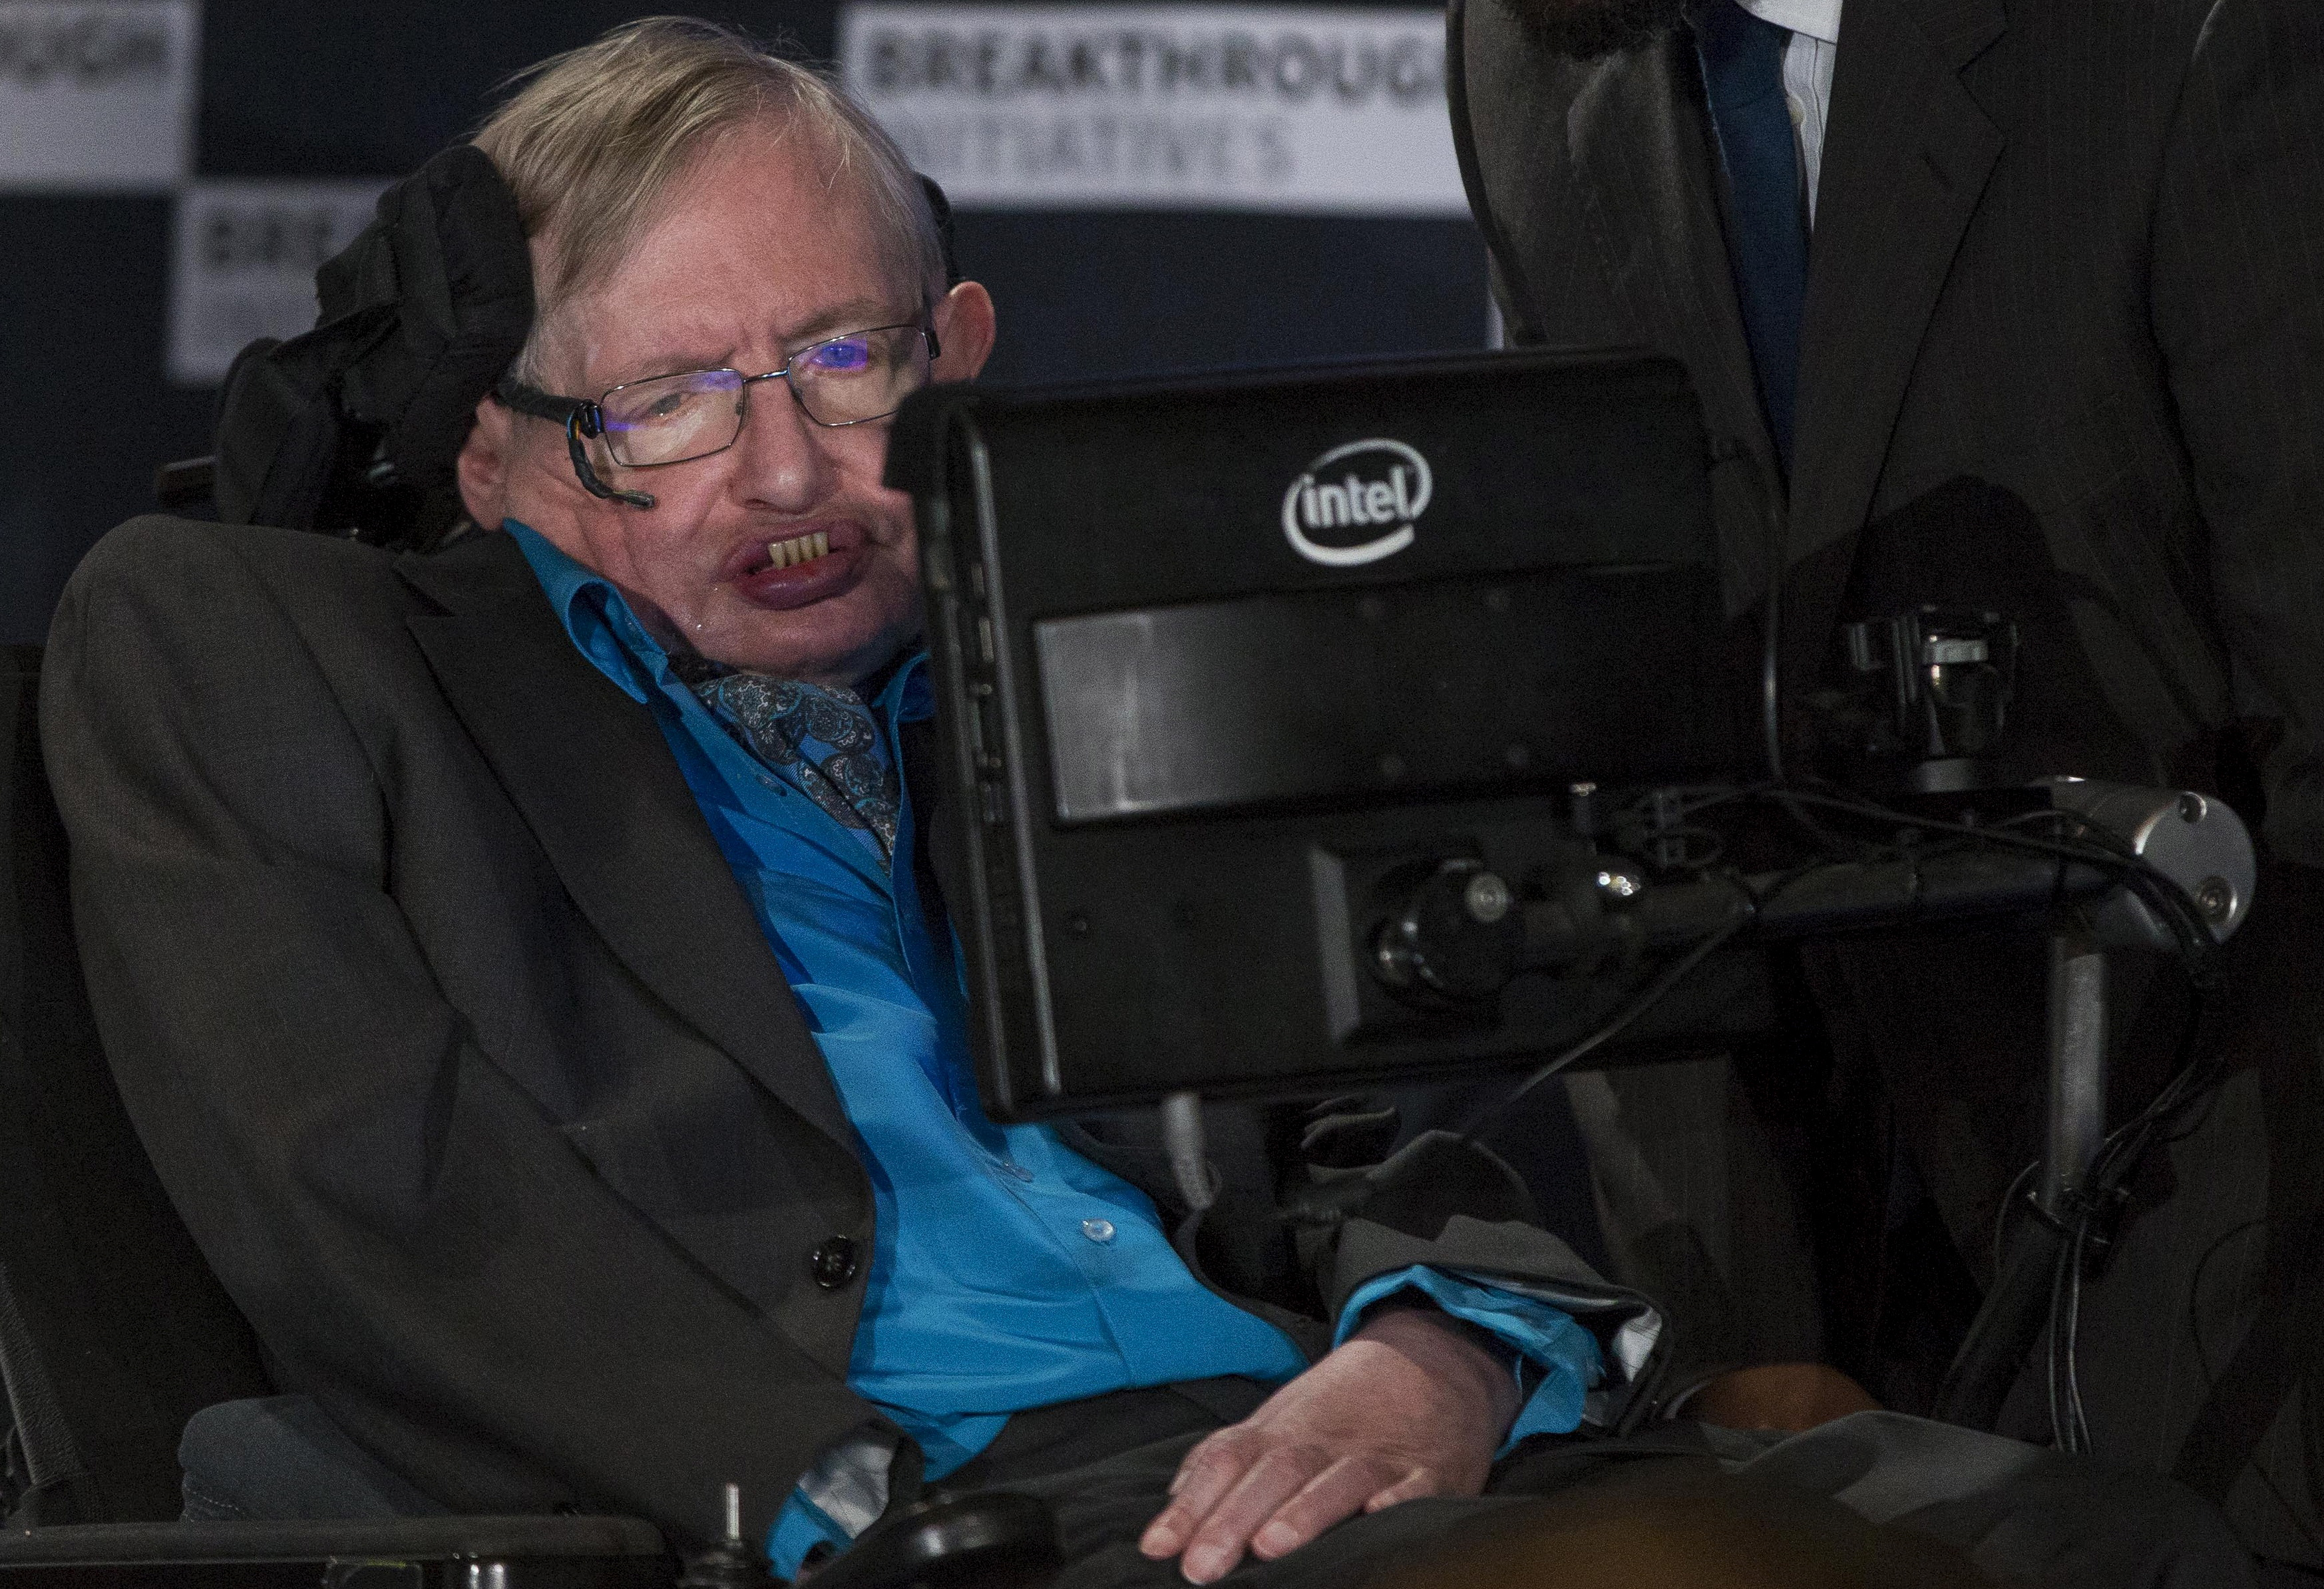 Professor Hawking speaks at a media event to launch a global science initiative at The Royal Society in London